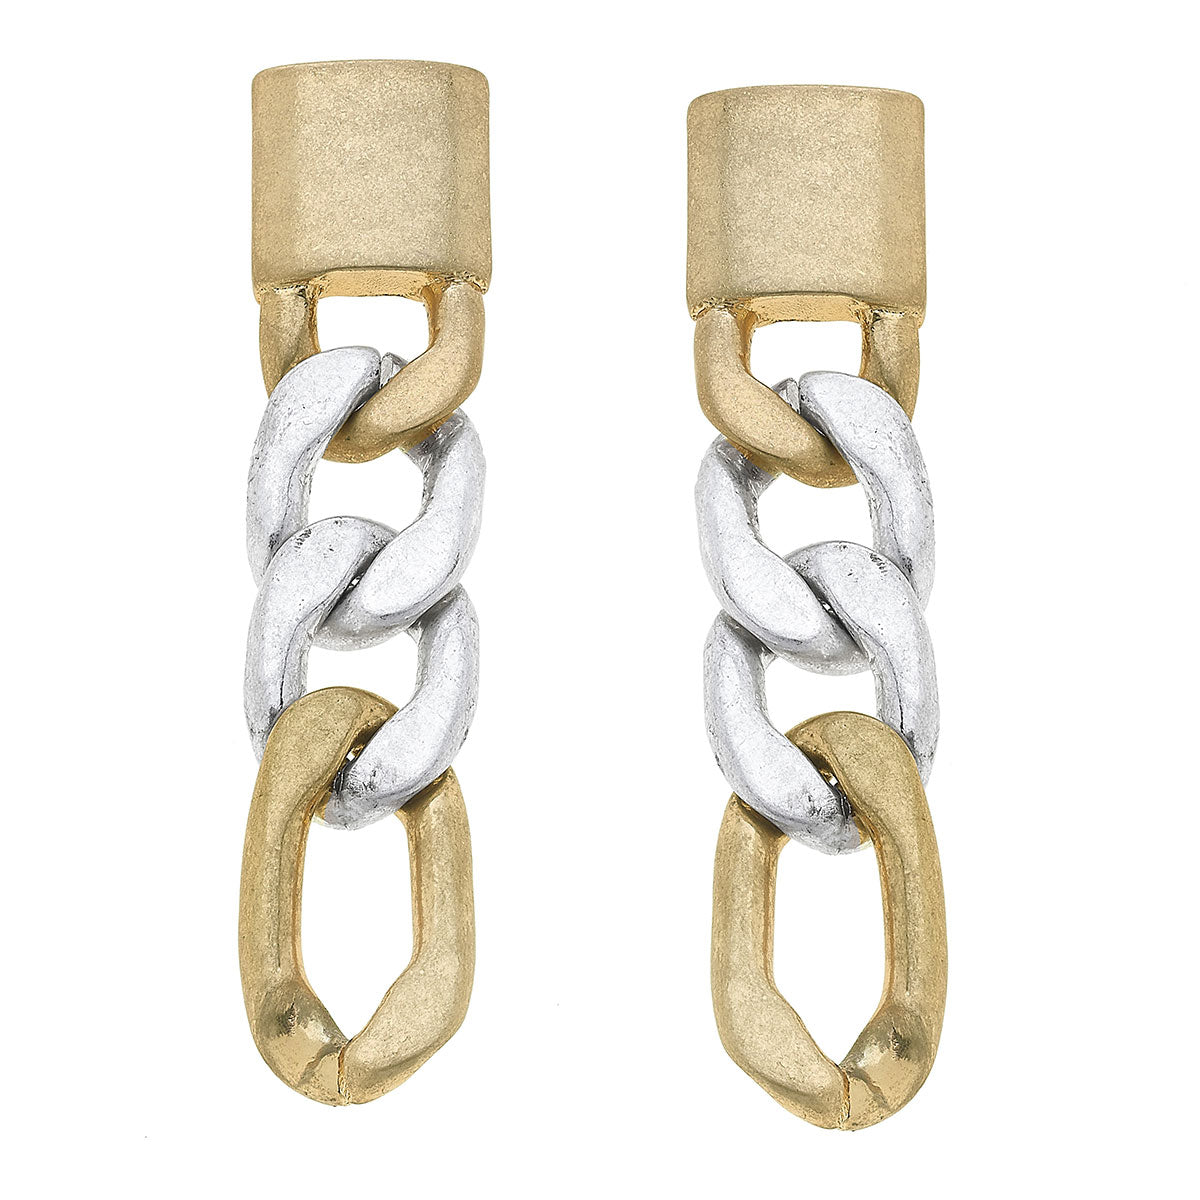 Genevieve Chain Link Earrings in Mixed Metals